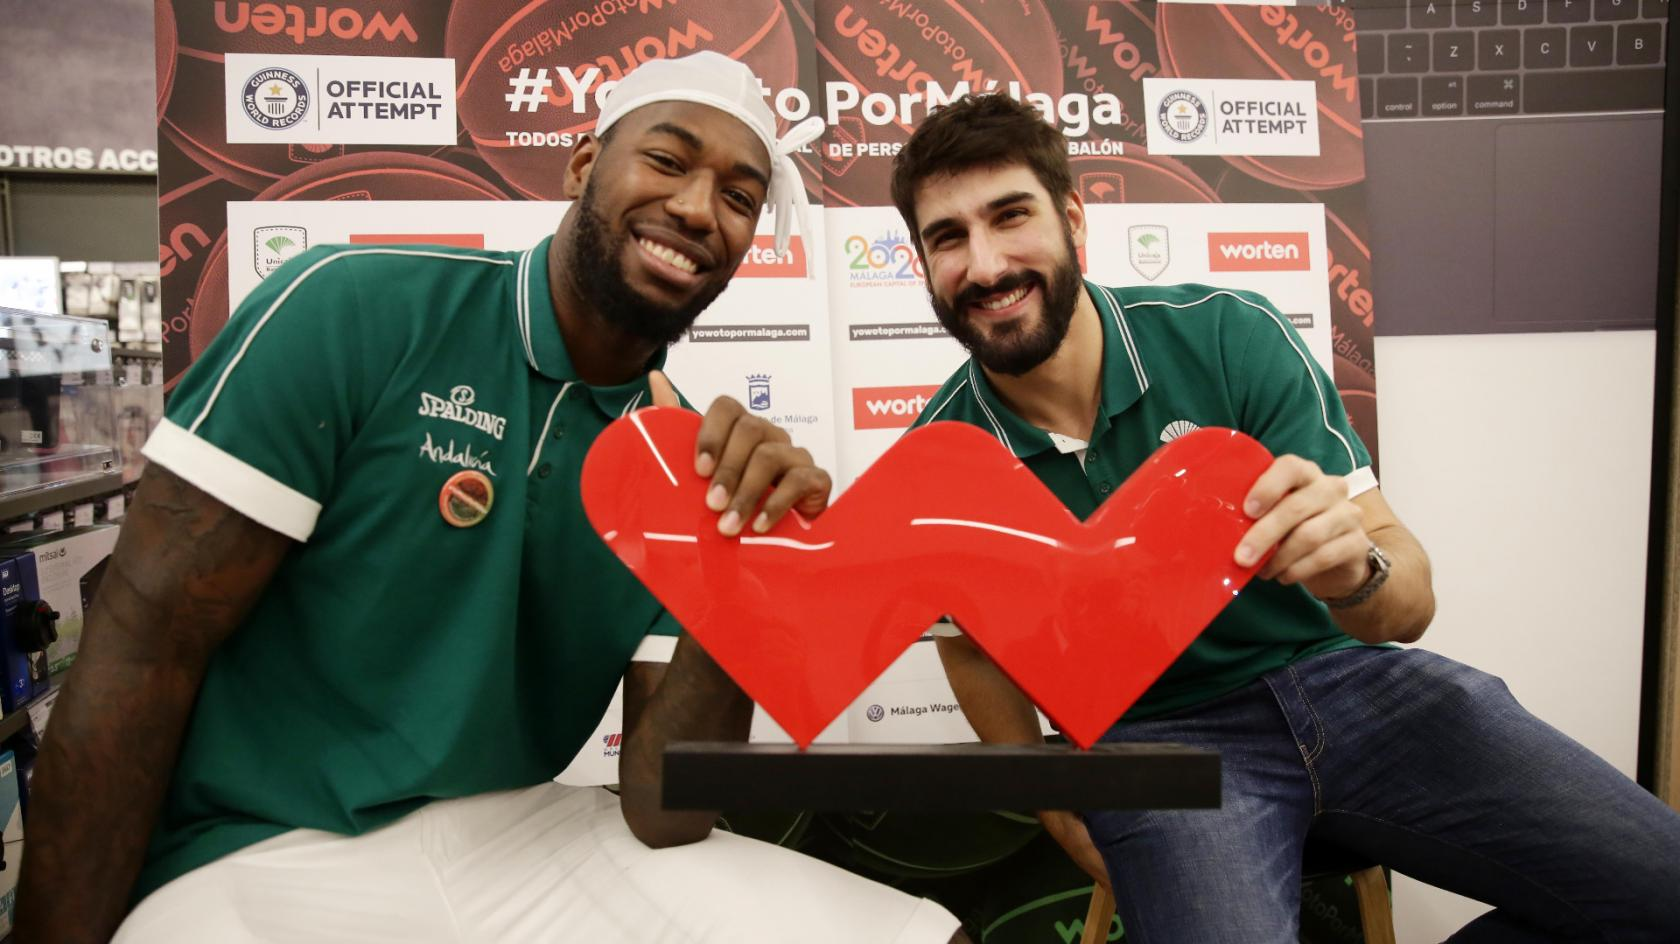 Worten and Unicaja Baloncesto hold a Basket Tour with the players